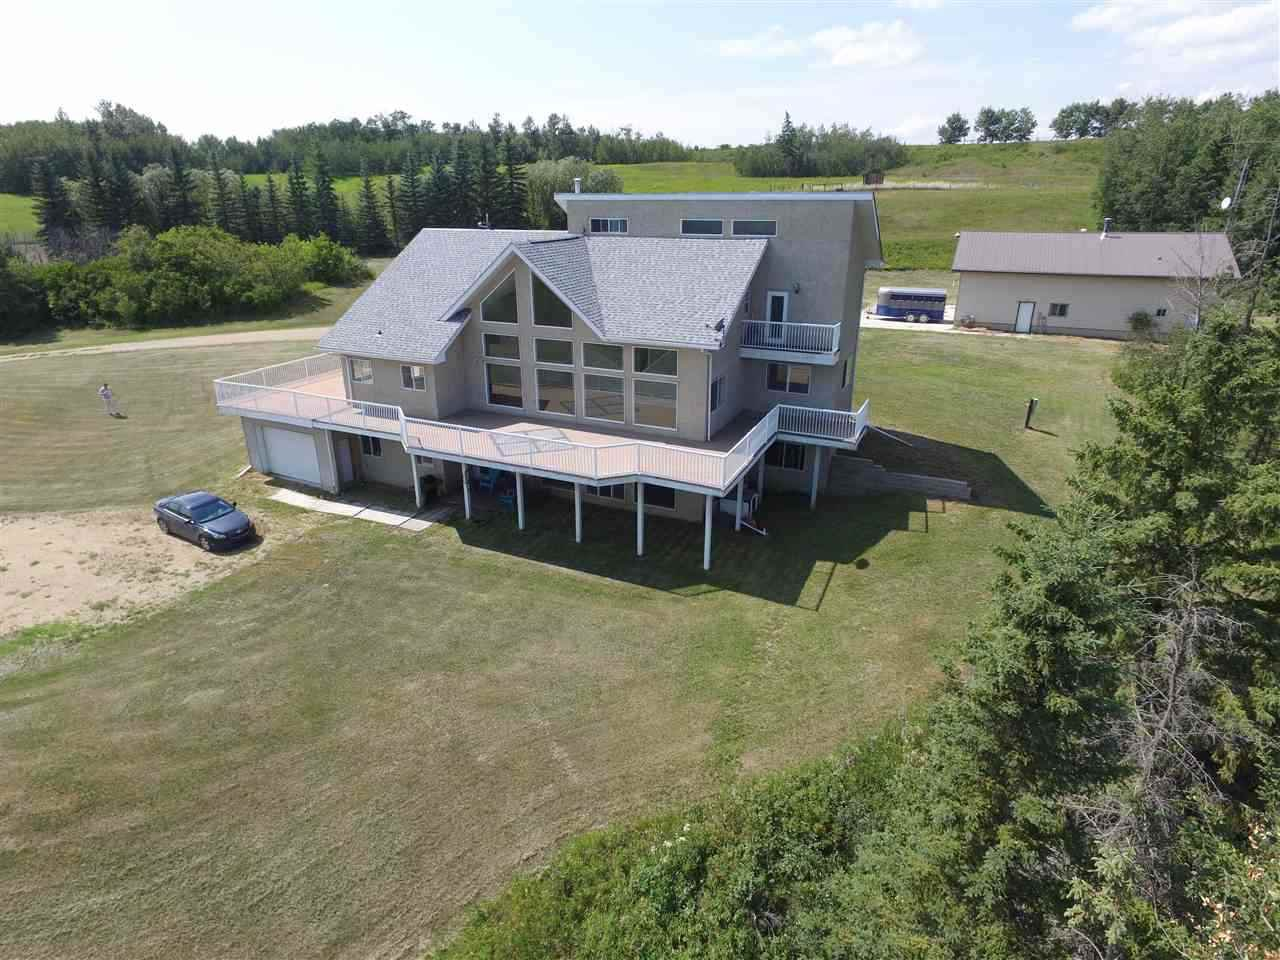 Photo 25: Photos: 462082B Hwy 822: Rural Wetaskiwin County House for sale : MLS®# E4170309